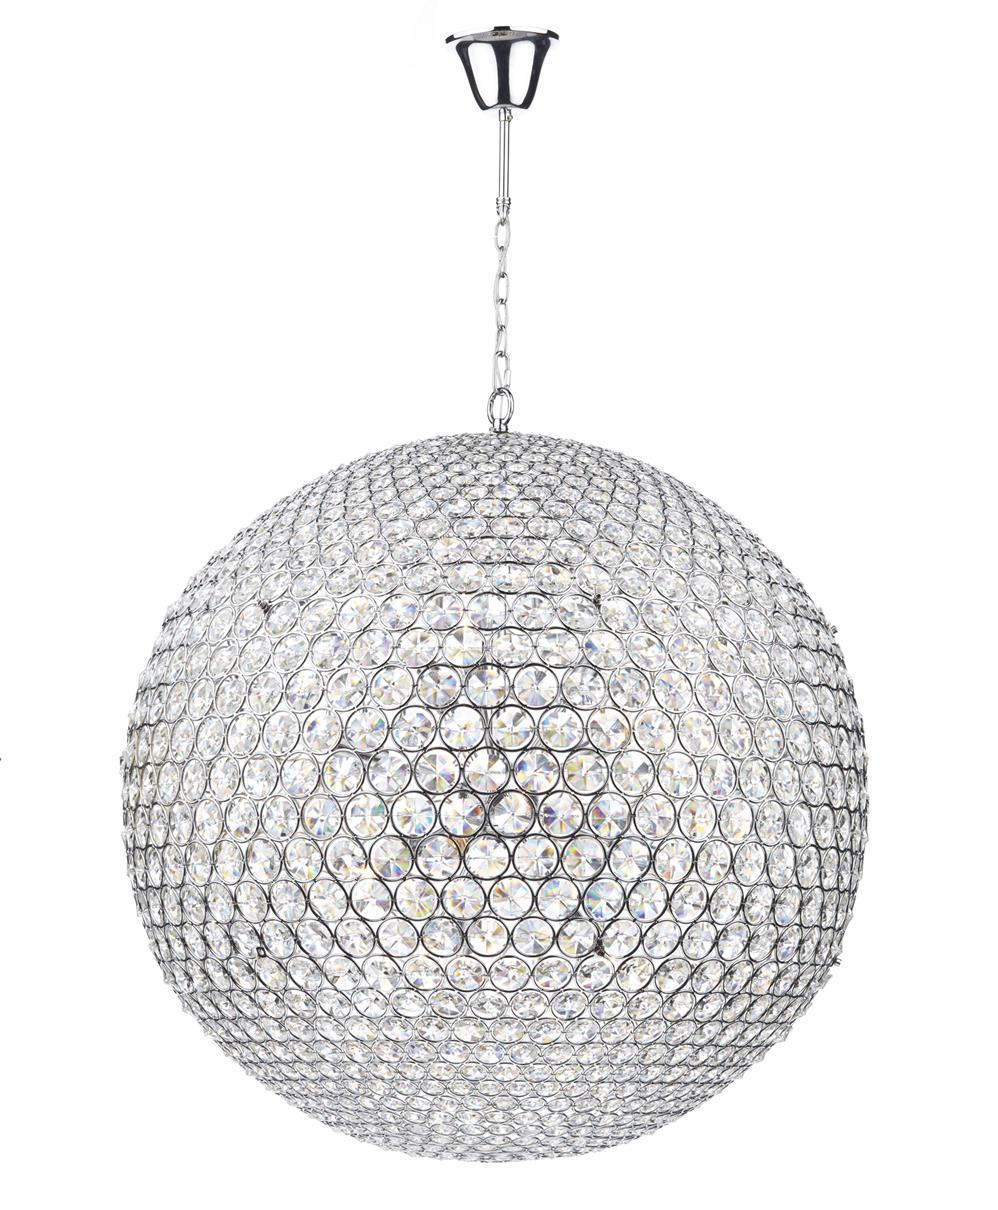 Dar FIE1250 Fiesta 12 Light 90cm Ball Pendant in Polished Chrome